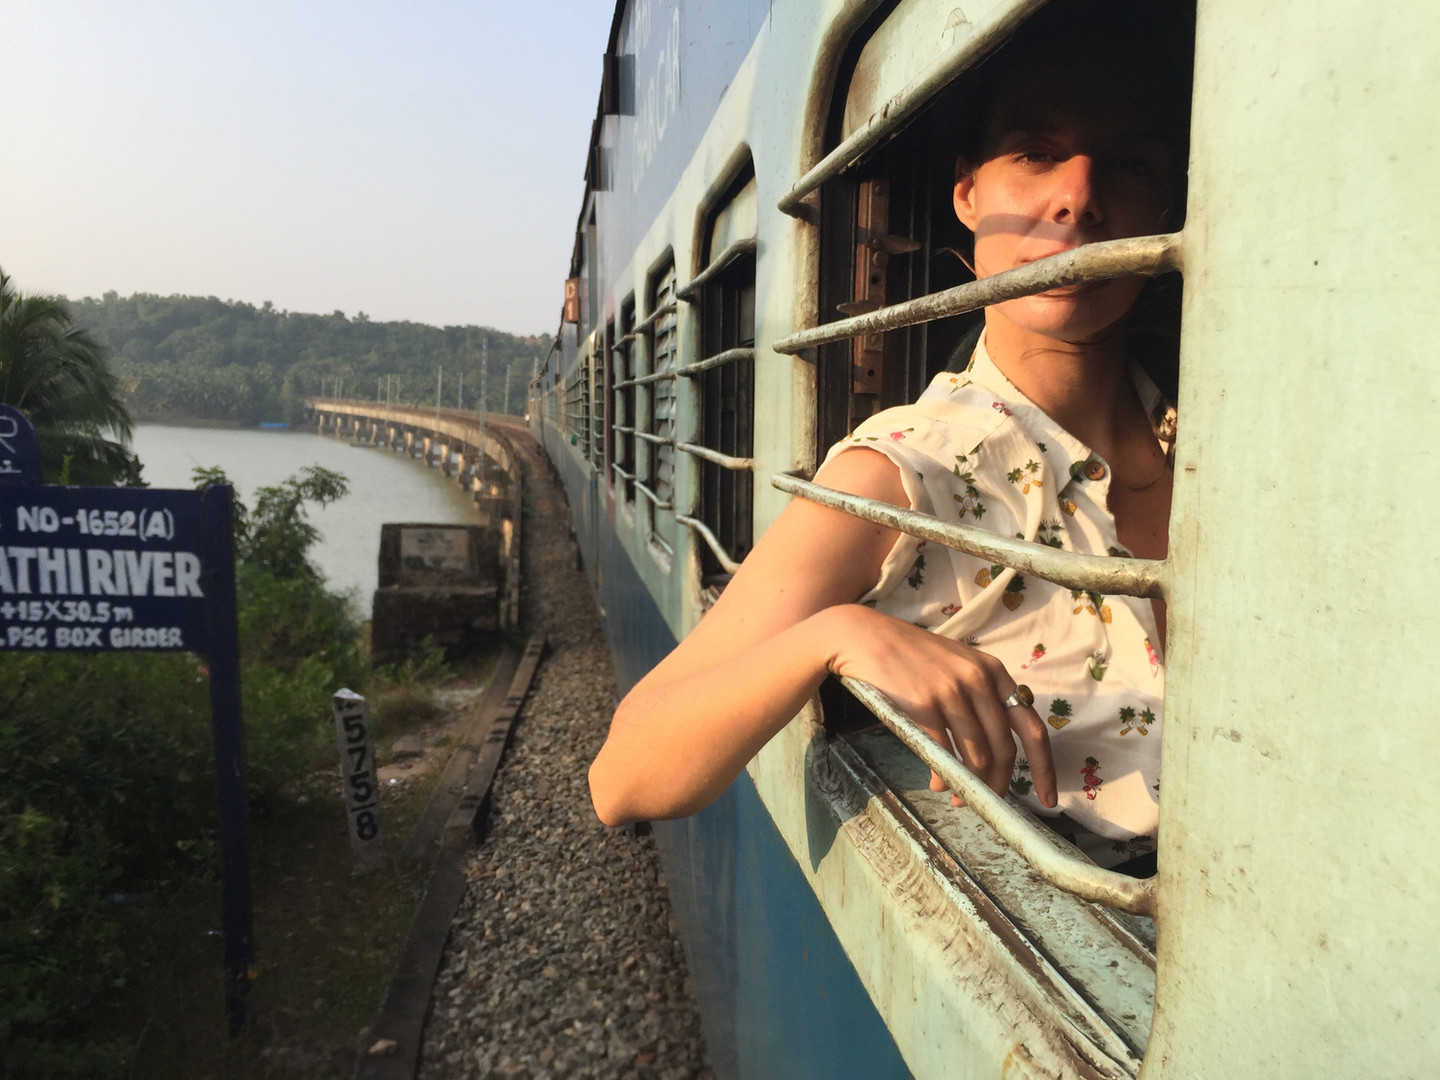 train travel through southern india with tropicool medley designs